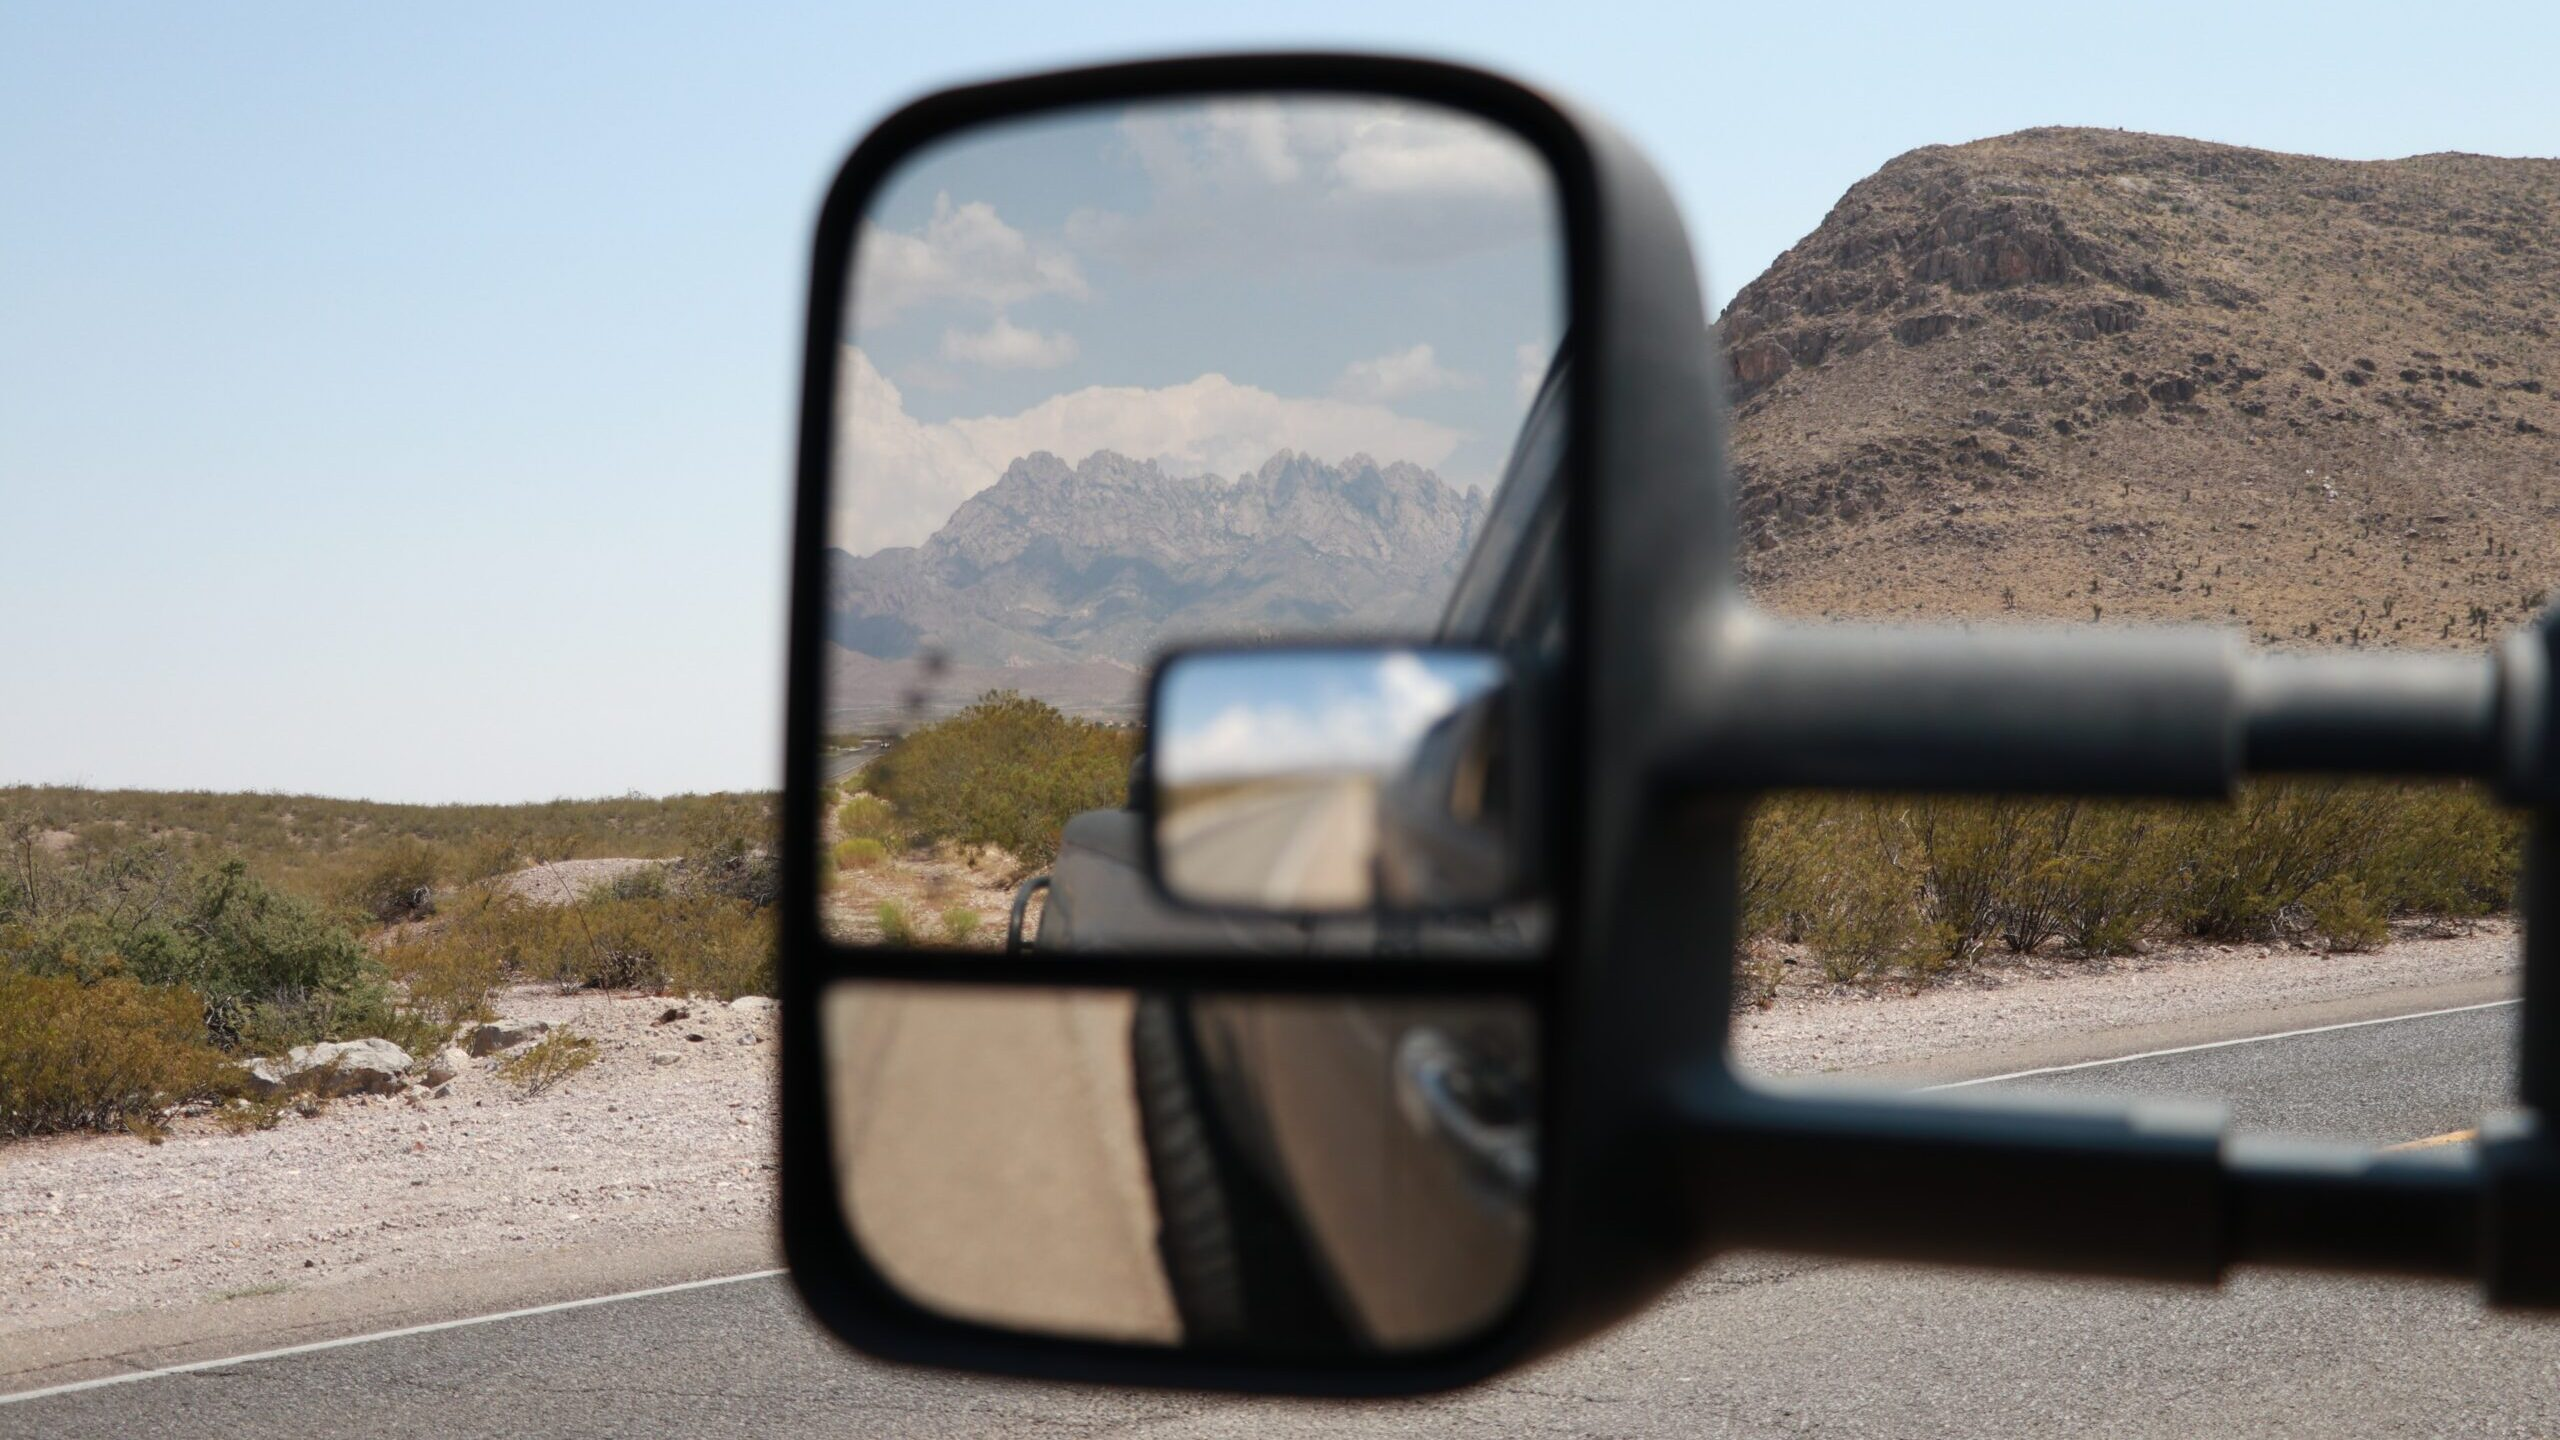 A rearview mirror of a vehicle in the desert